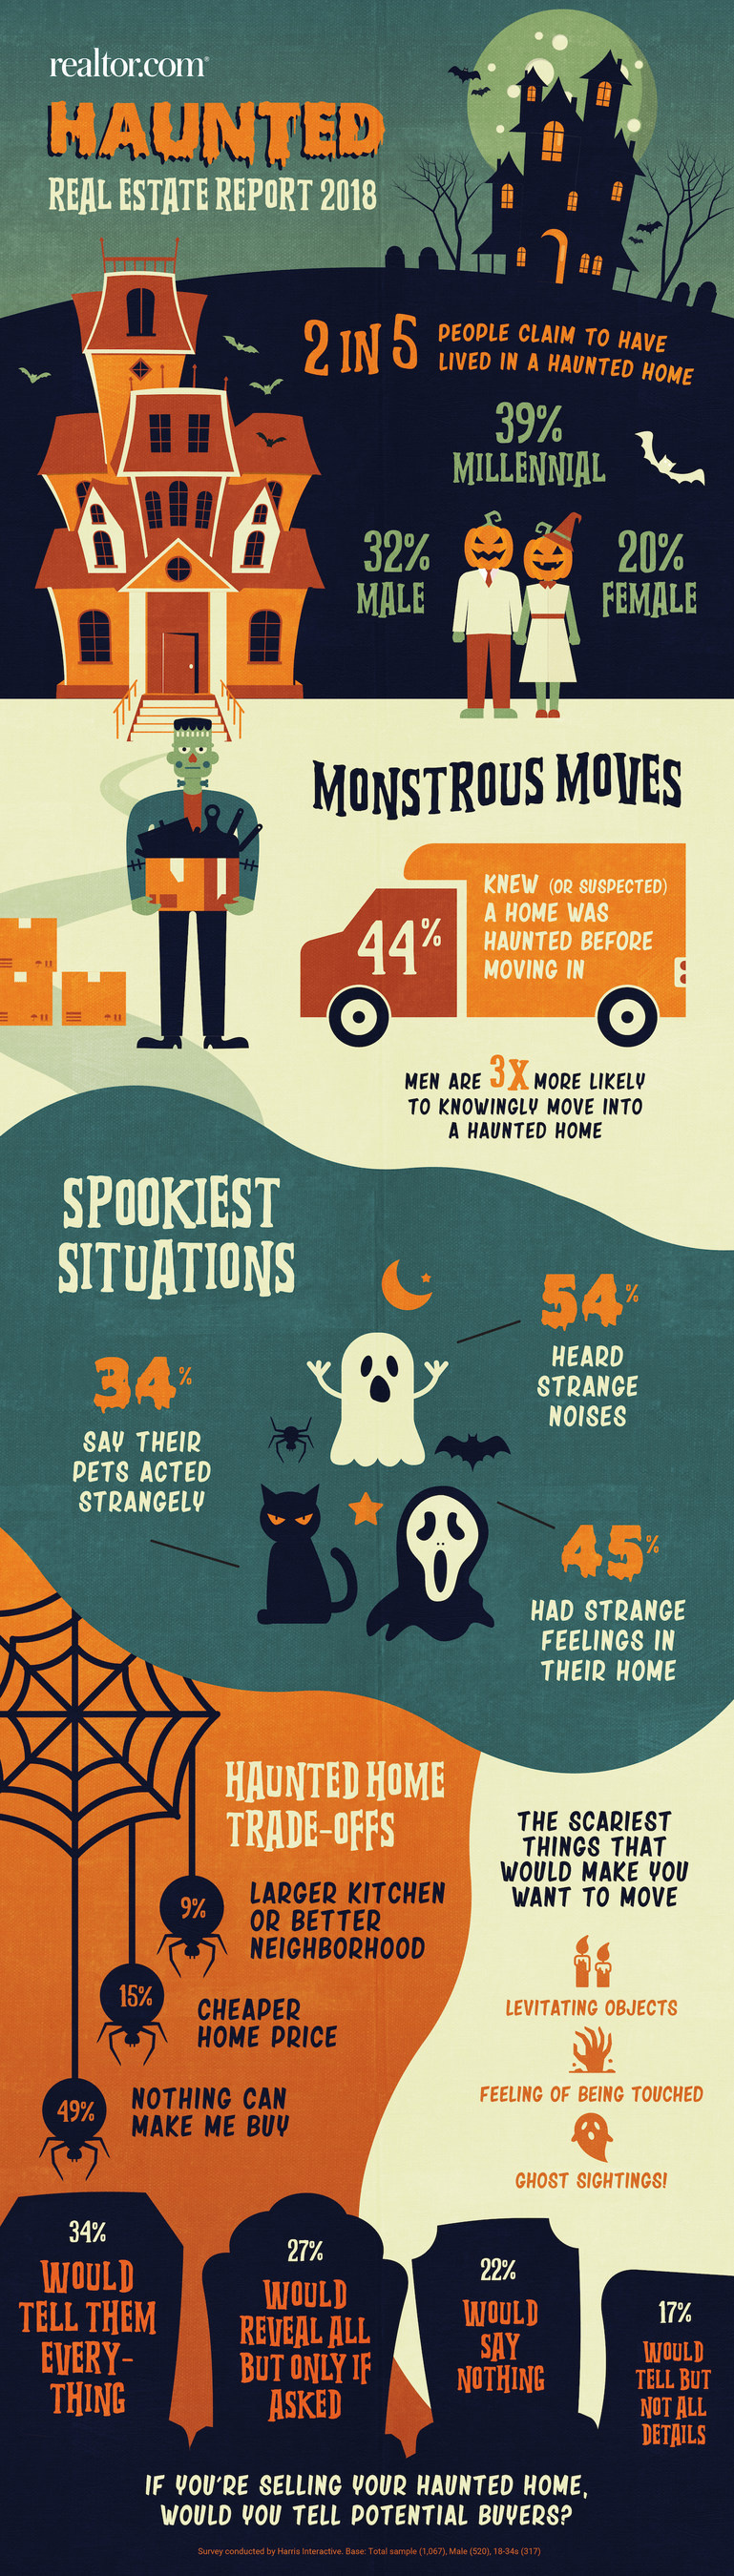 realtor.com Halloween infographic. Visit source link at the end of the article for more information.